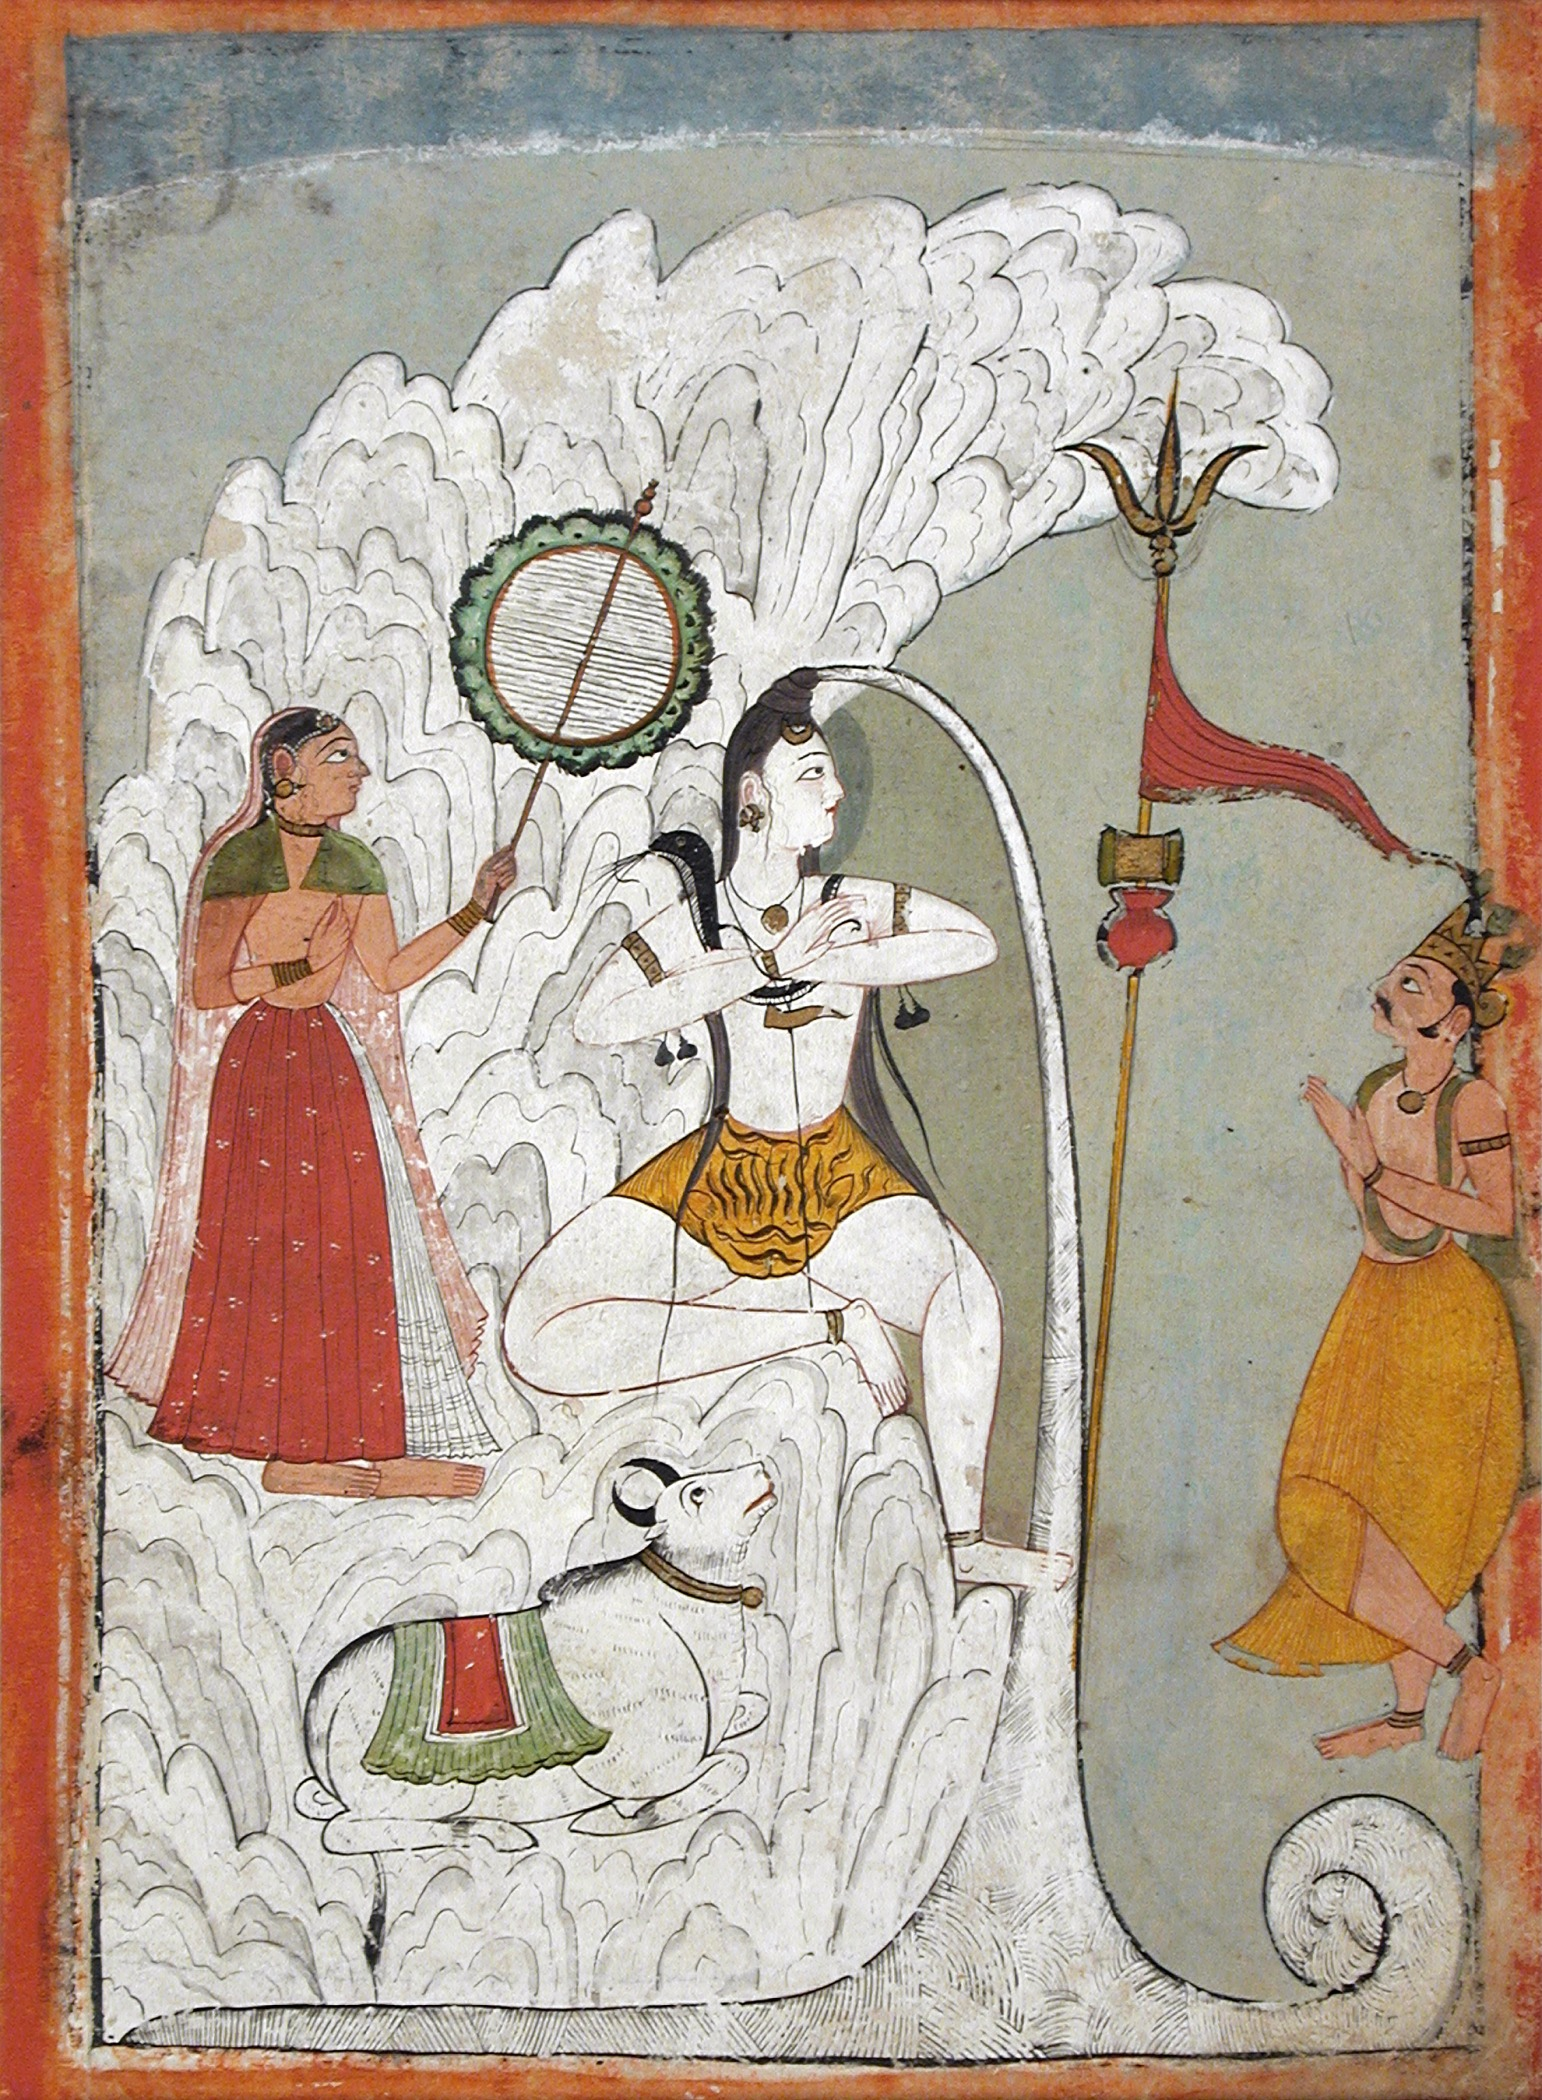 Image 5. Shiva Bearing the Descent of the Ganges River, folio from a Hindi manuscript by the saint Narayan. India, Himachal Pradesh, Guler, Bathu, ca. 1740 Drawings; watercolors Opaque watercolor, gold, and ink on paper Gift of Paul F. Walter (M.86.345.6) South and Southeast Asian Art of Los Angeles County Museum of Art. Photographer not given.